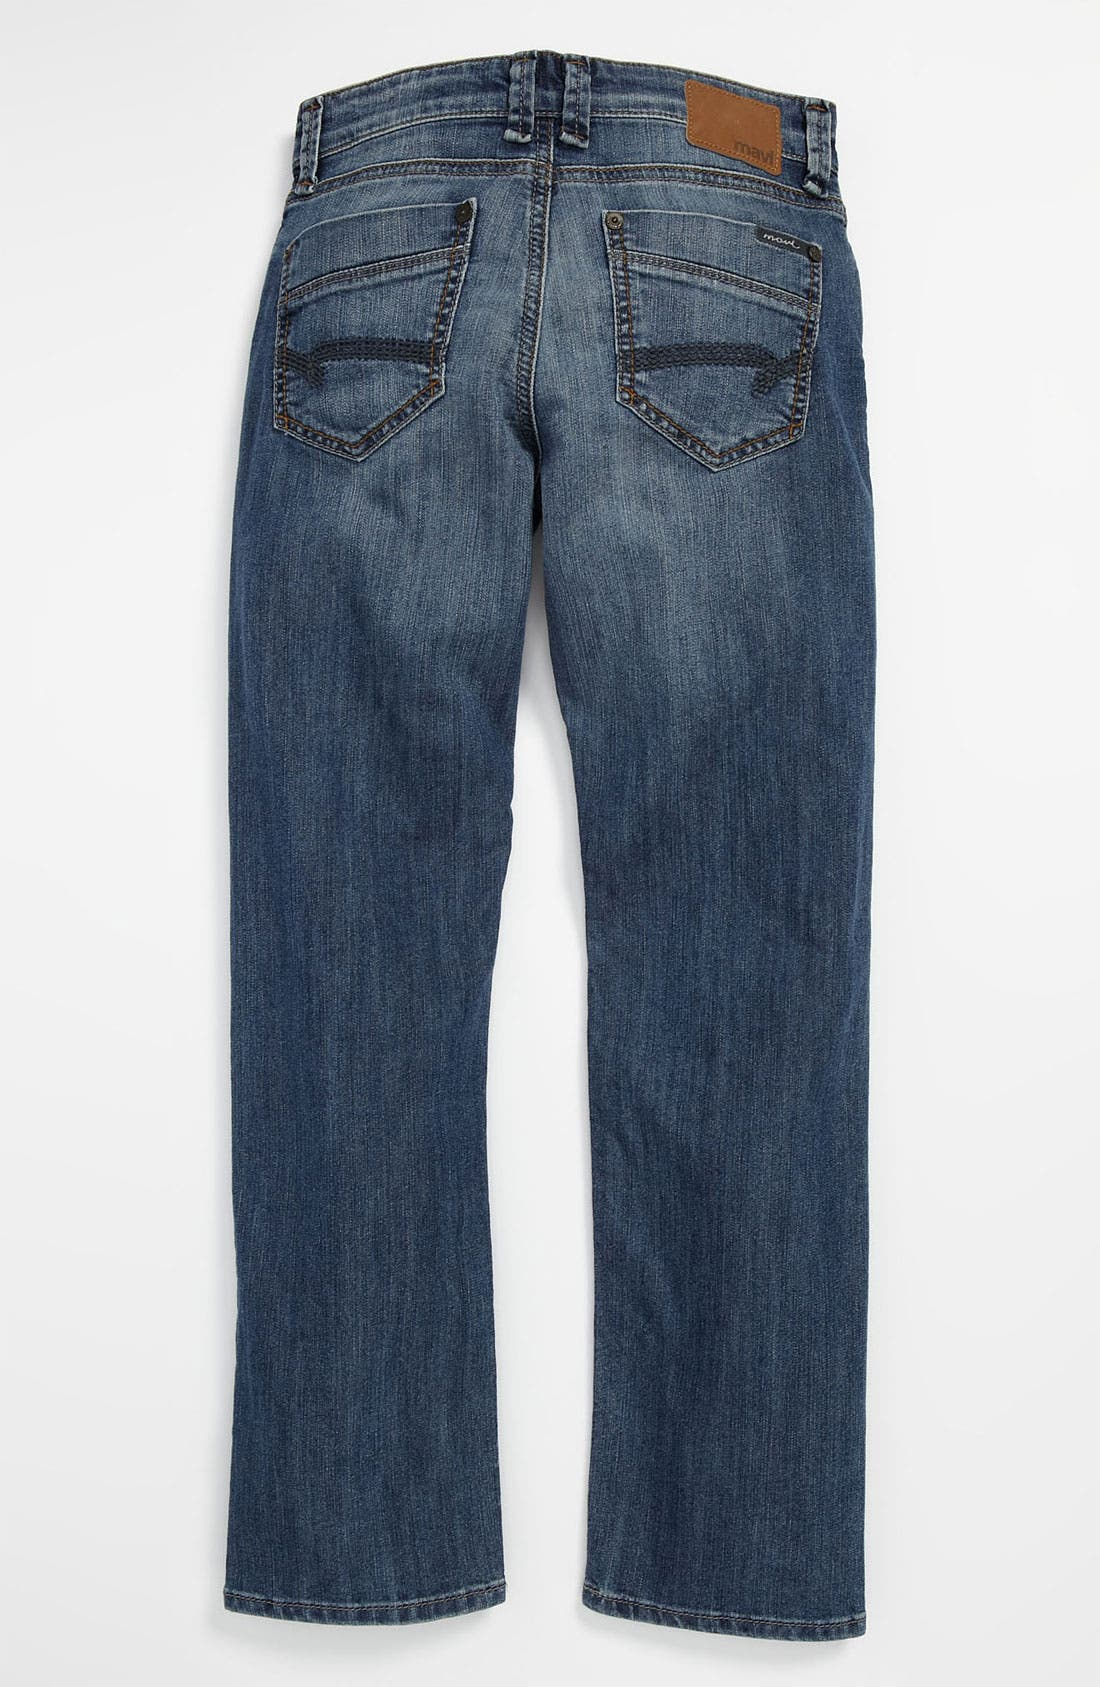 Alternate Image 1 Selected - Mavi Jeans 'Timothy' Slim Straight Leg Jeans (Big Boys)